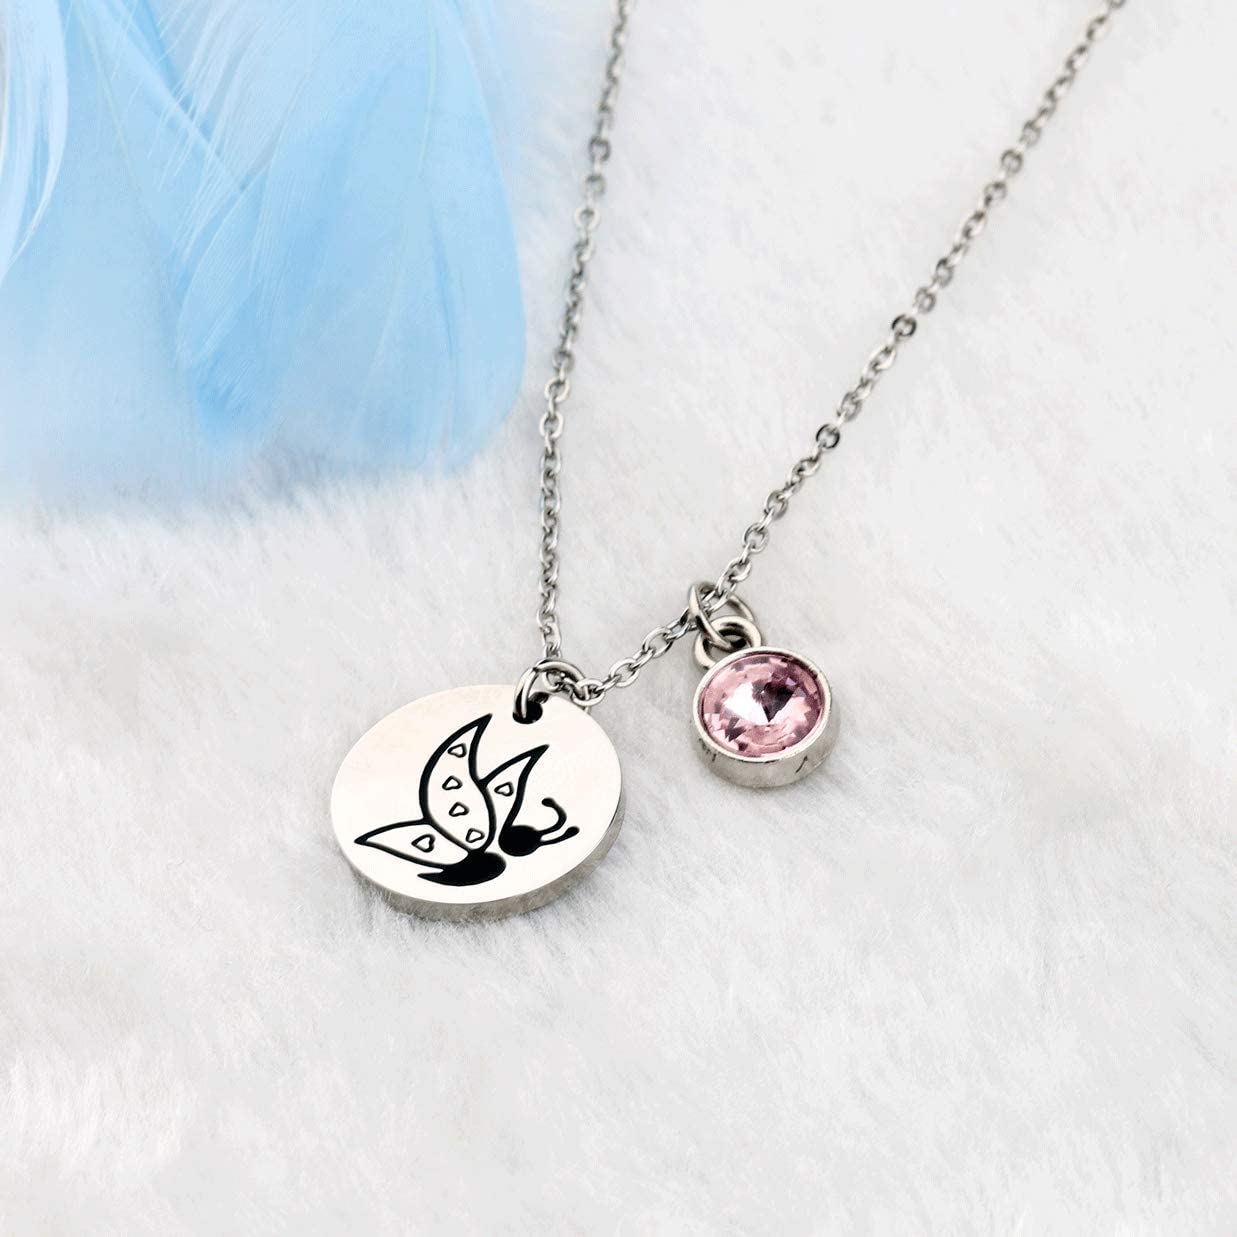 WSNANG Suicide Awareness Semicolon Necklace Suicide Prevention Awareness Gift Mental Health Awareness Inspirational Gift